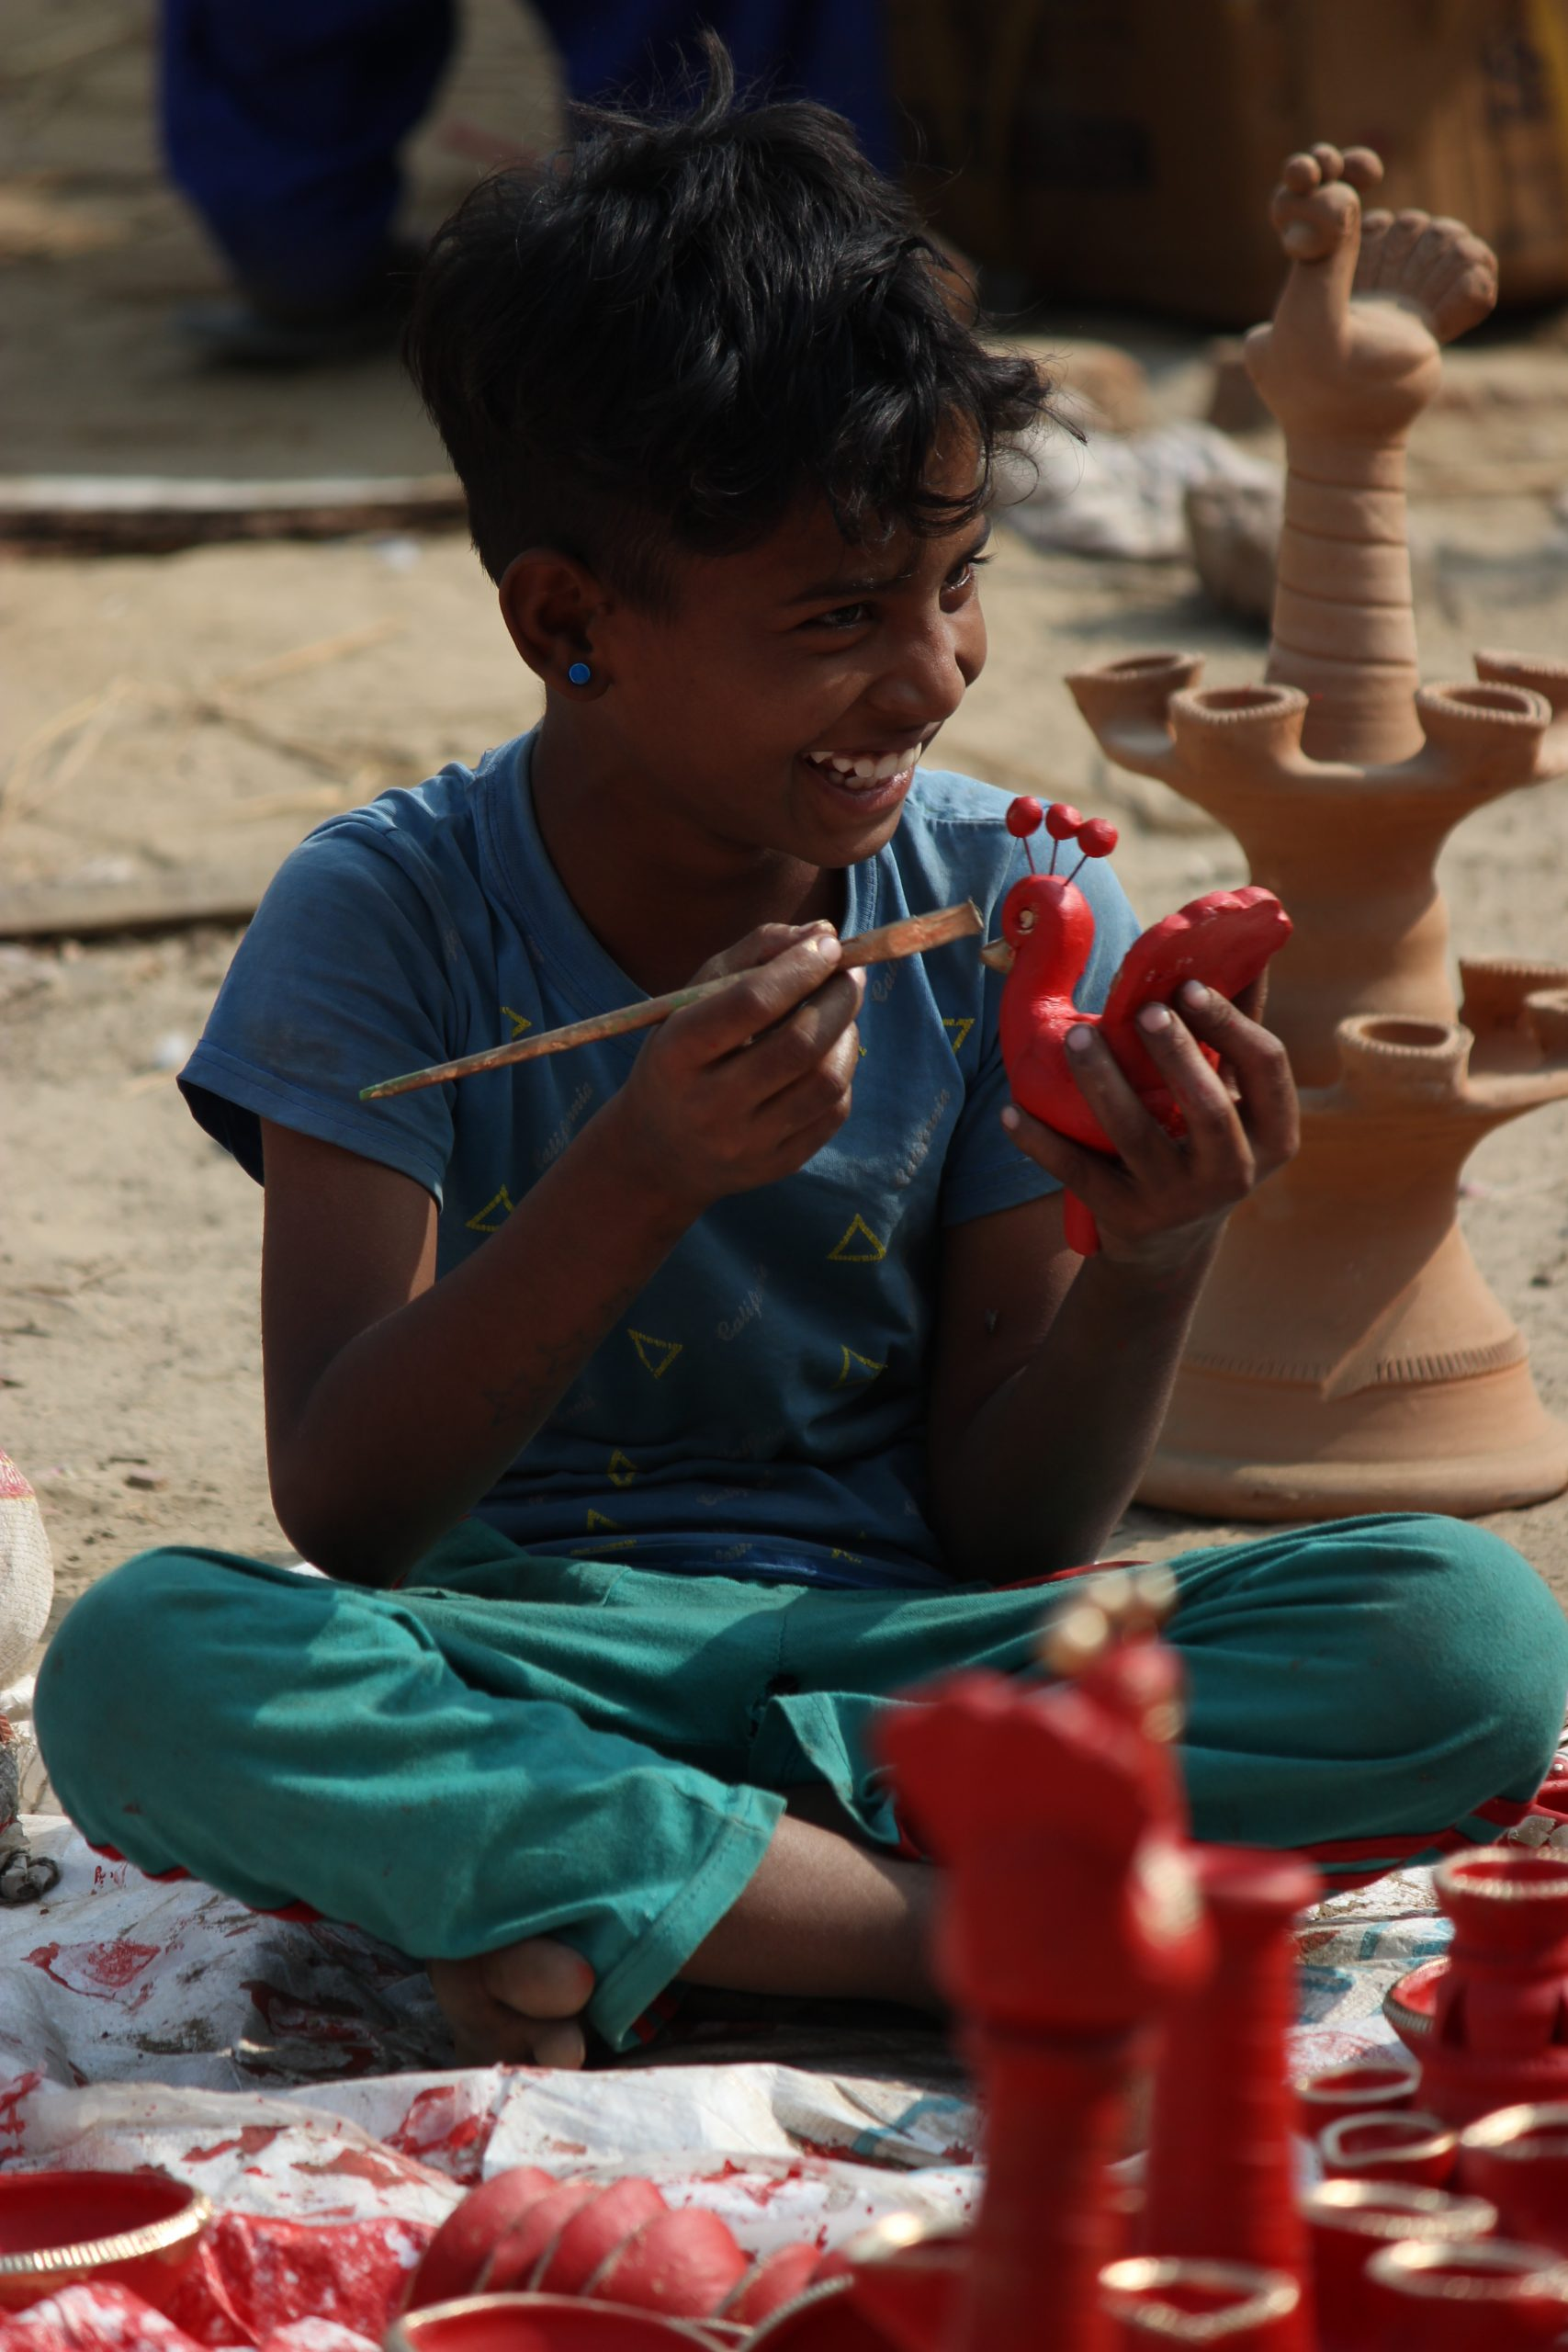 A boy painting clay items